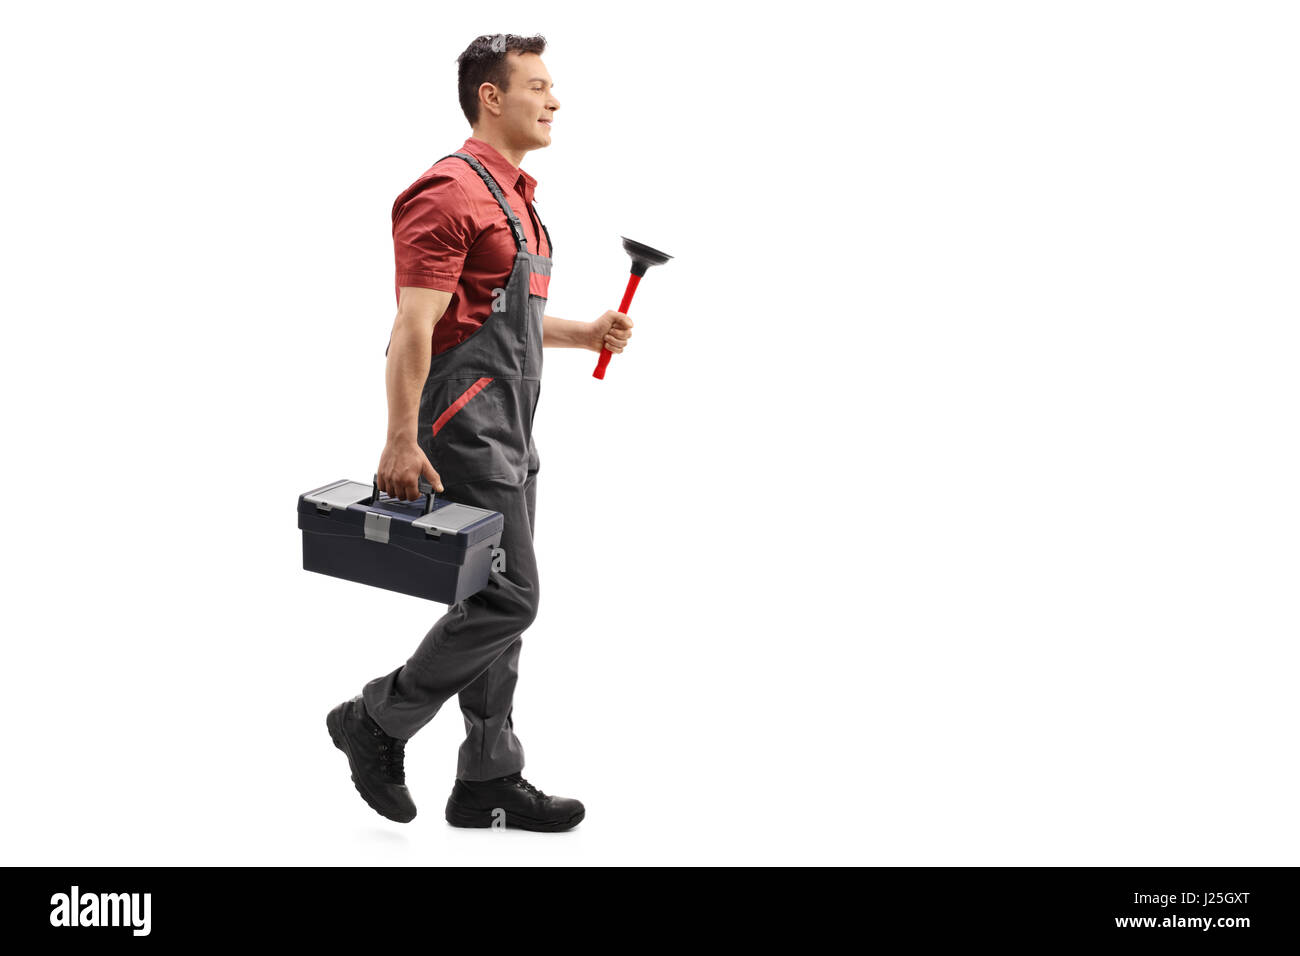 Full length profile shot of a plumber holding a plunger and a toolbox walking isolated on white background - Stock Image